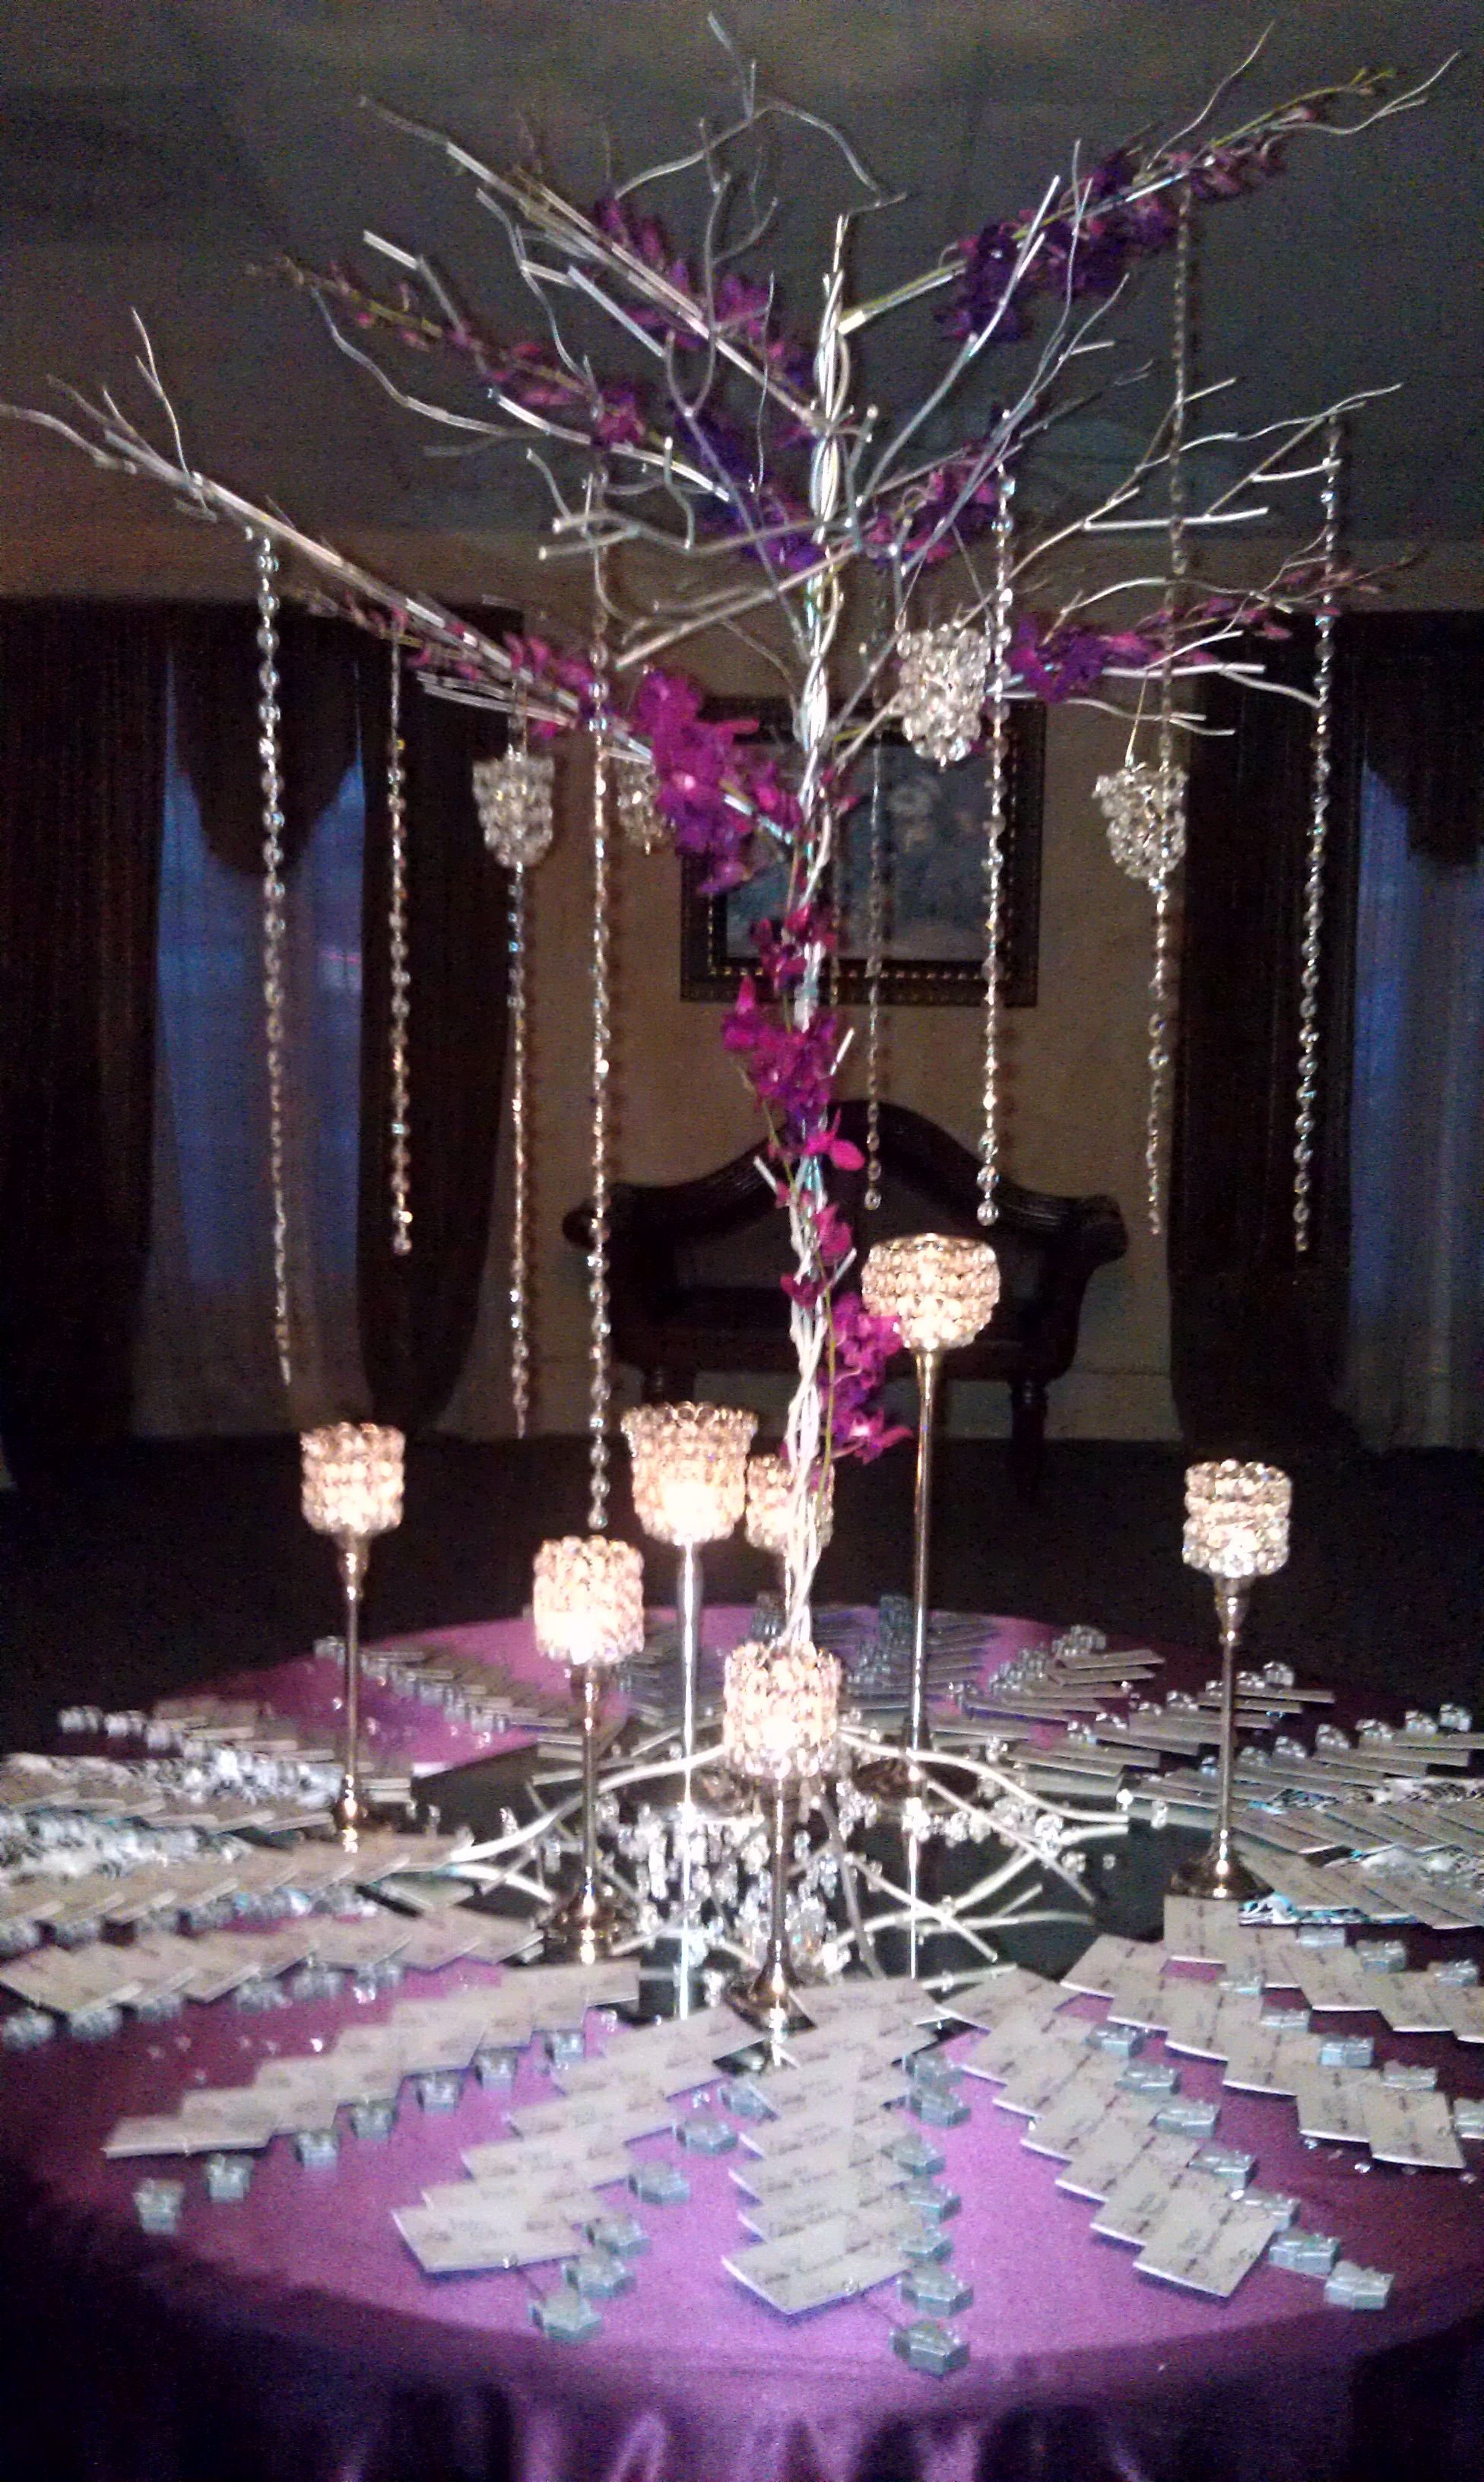 Entry Table With Escort Cards And Purple Orchids In Crystal